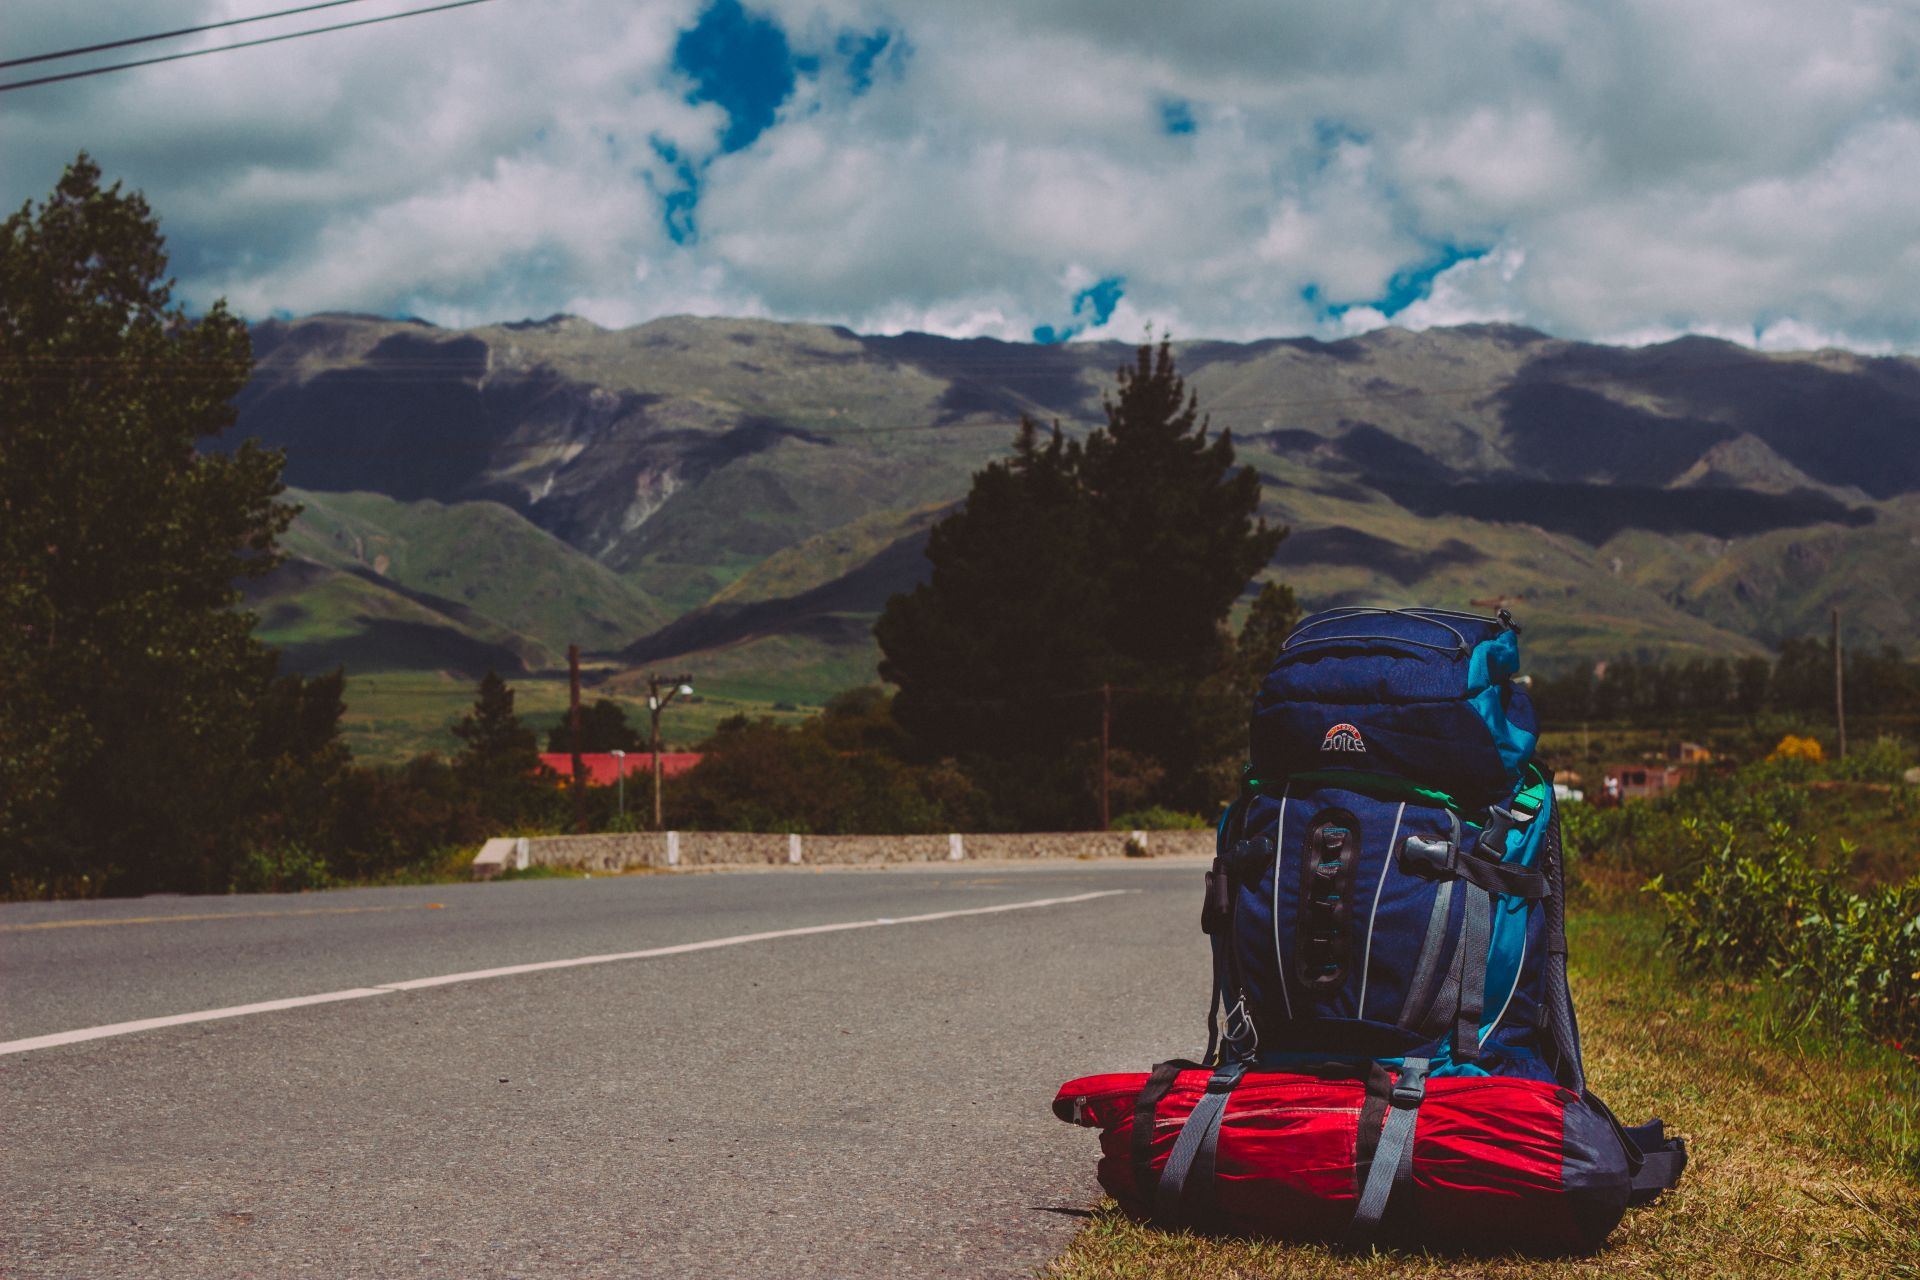 , mission, peace, horizon, backpack, trip, traveler, luggage, path